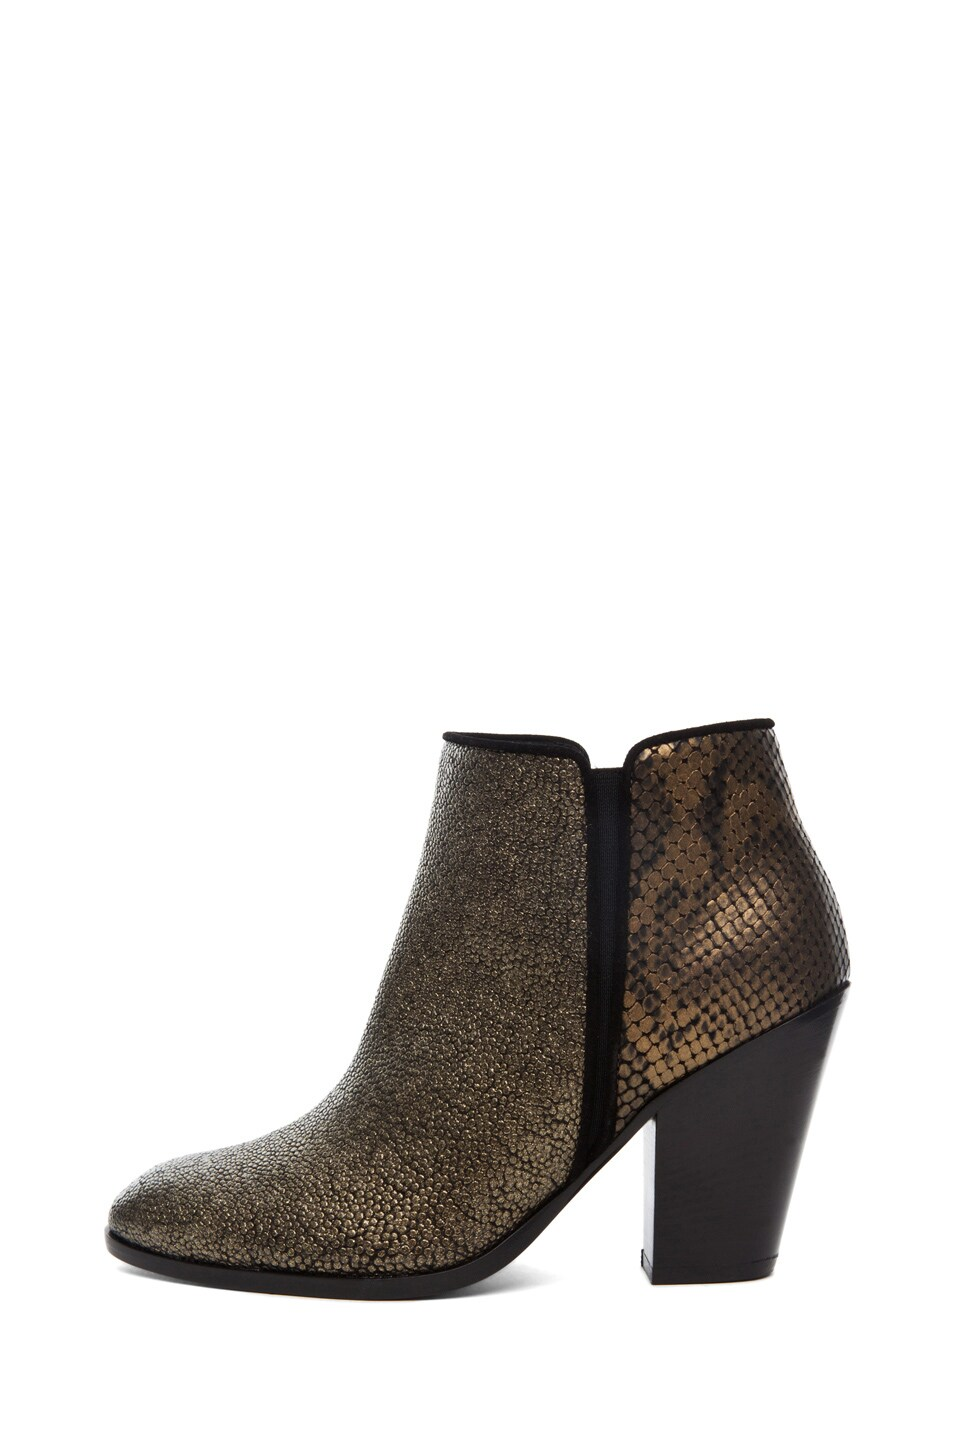 Image 1 of Giuseppe Zanotti Mixed Print Bootie in Bronze